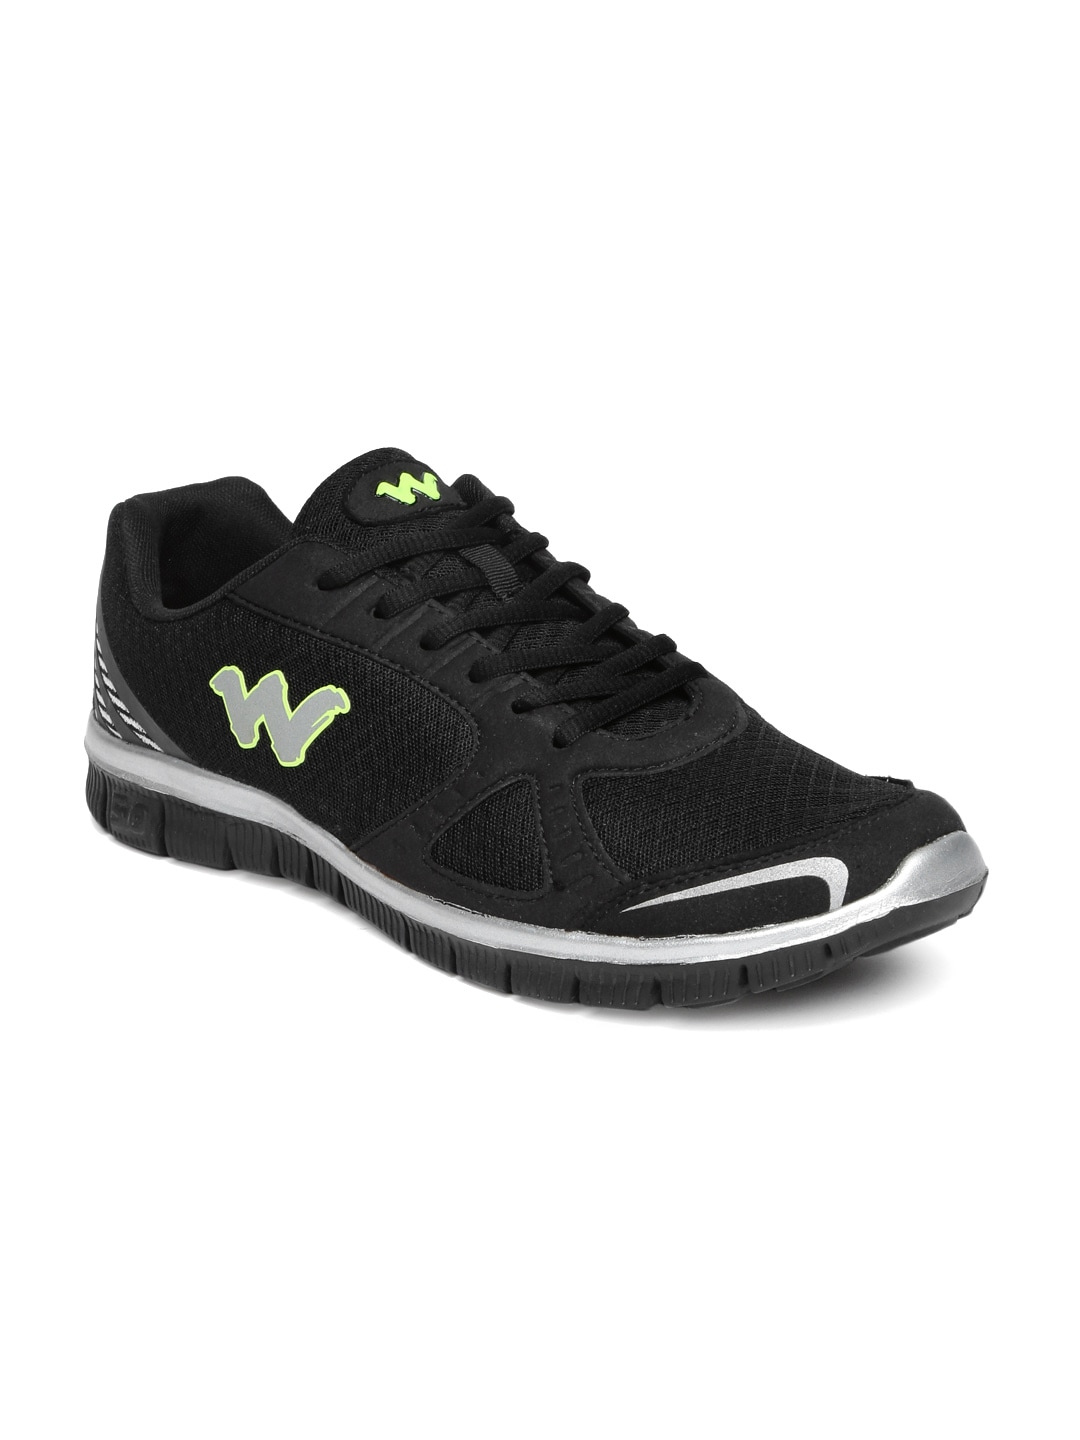 Sports Shoes Buy Sport For Men Women Online Myntra Amazoncom Johnny 5 Is Alive Short Circuit Kid39s Tshirt Clothing